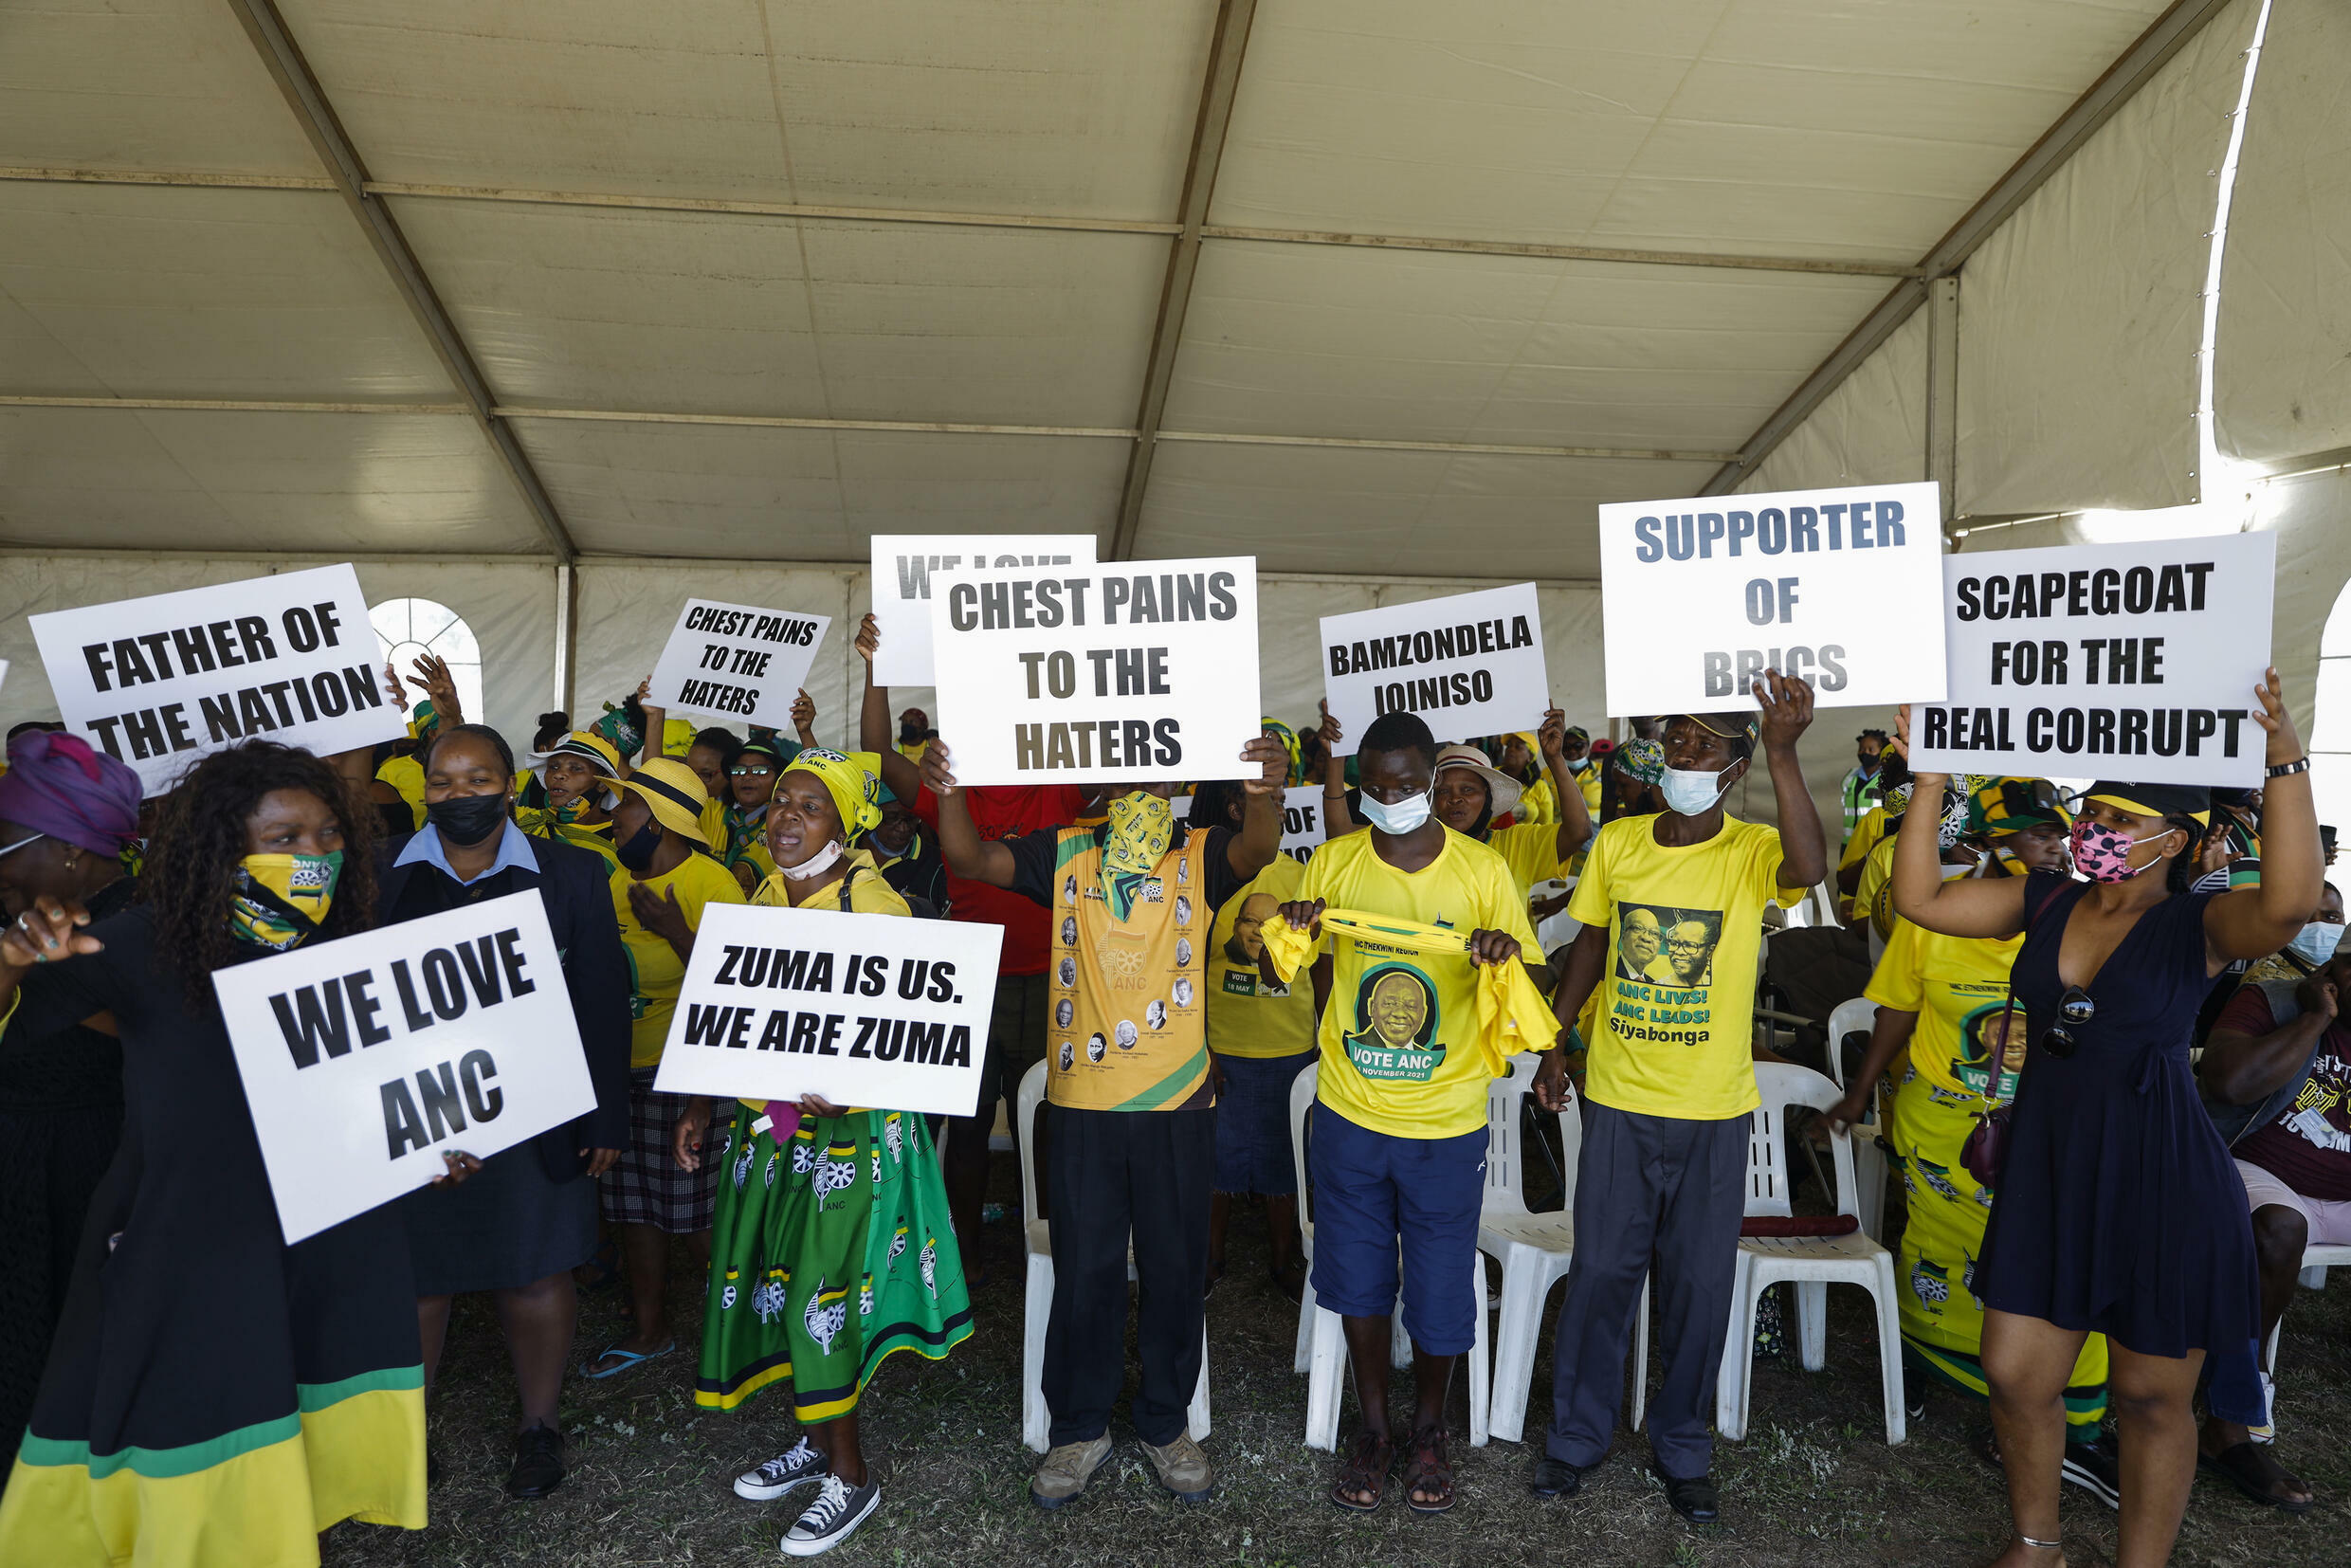 A 'welcome prayer' for Zuma, who was released on on parole last month but has not appeared in public since